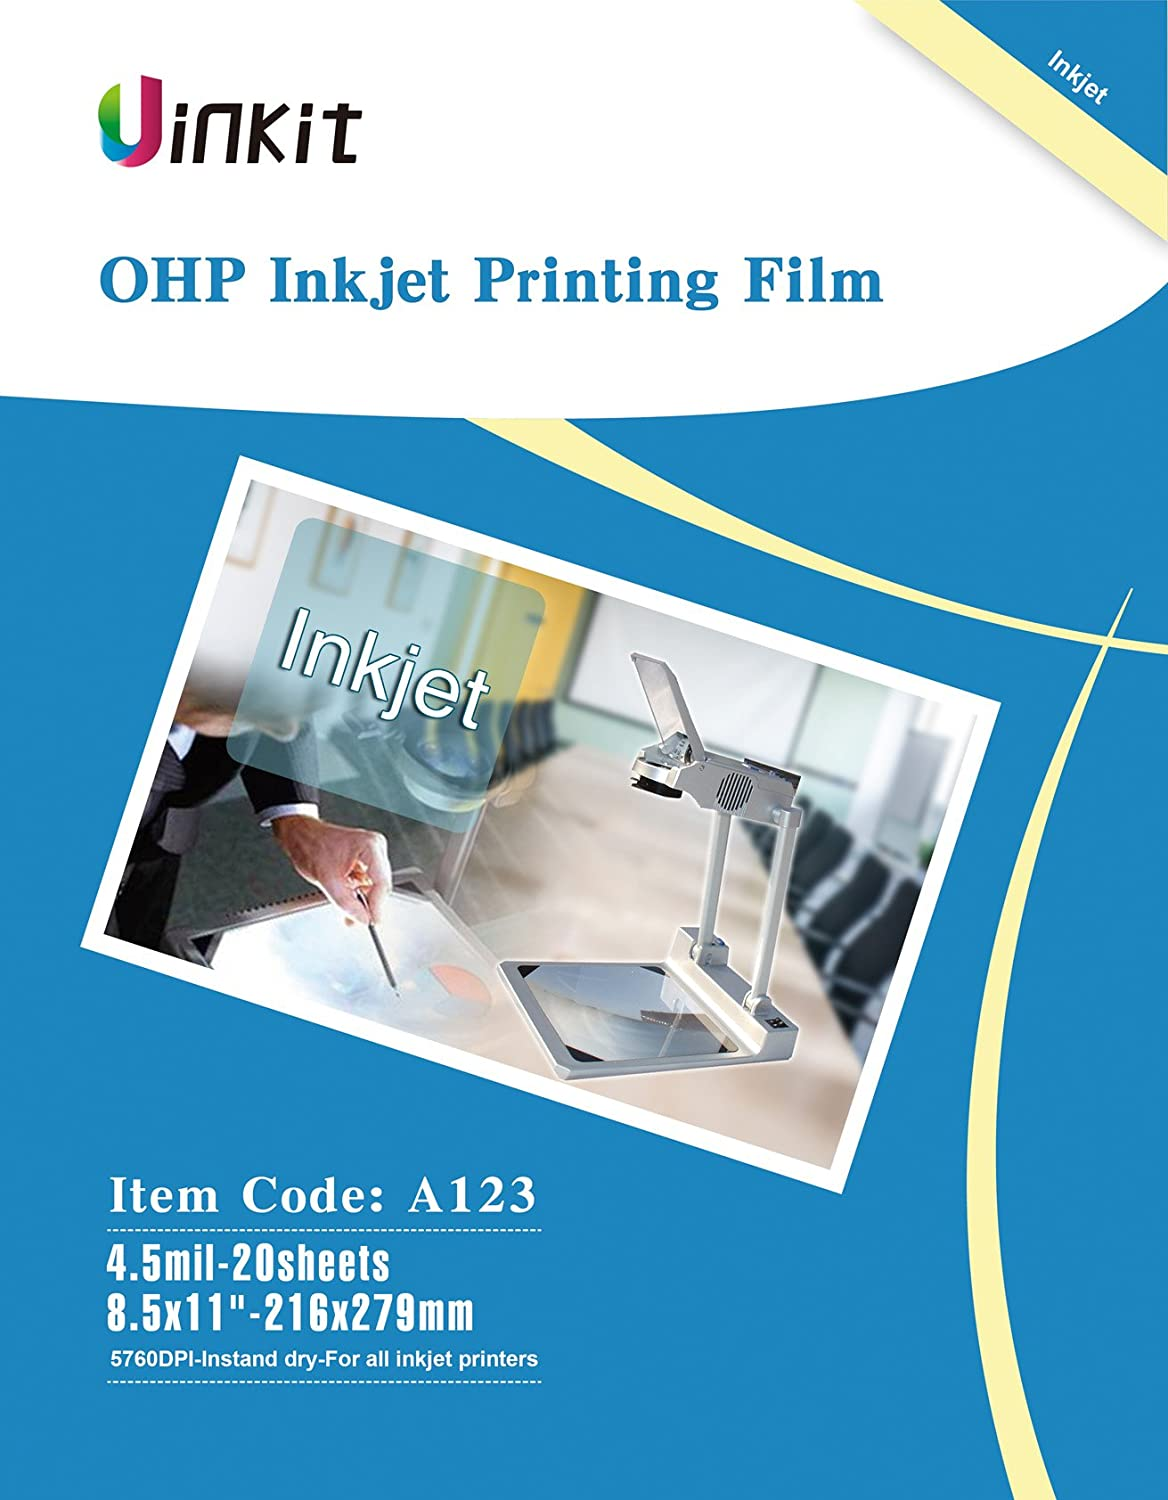 "OHP Film Overhead Projector Film - 8.5x11"" for Inkjet Printer only Transparency Film 20 Sheets Uinkit"